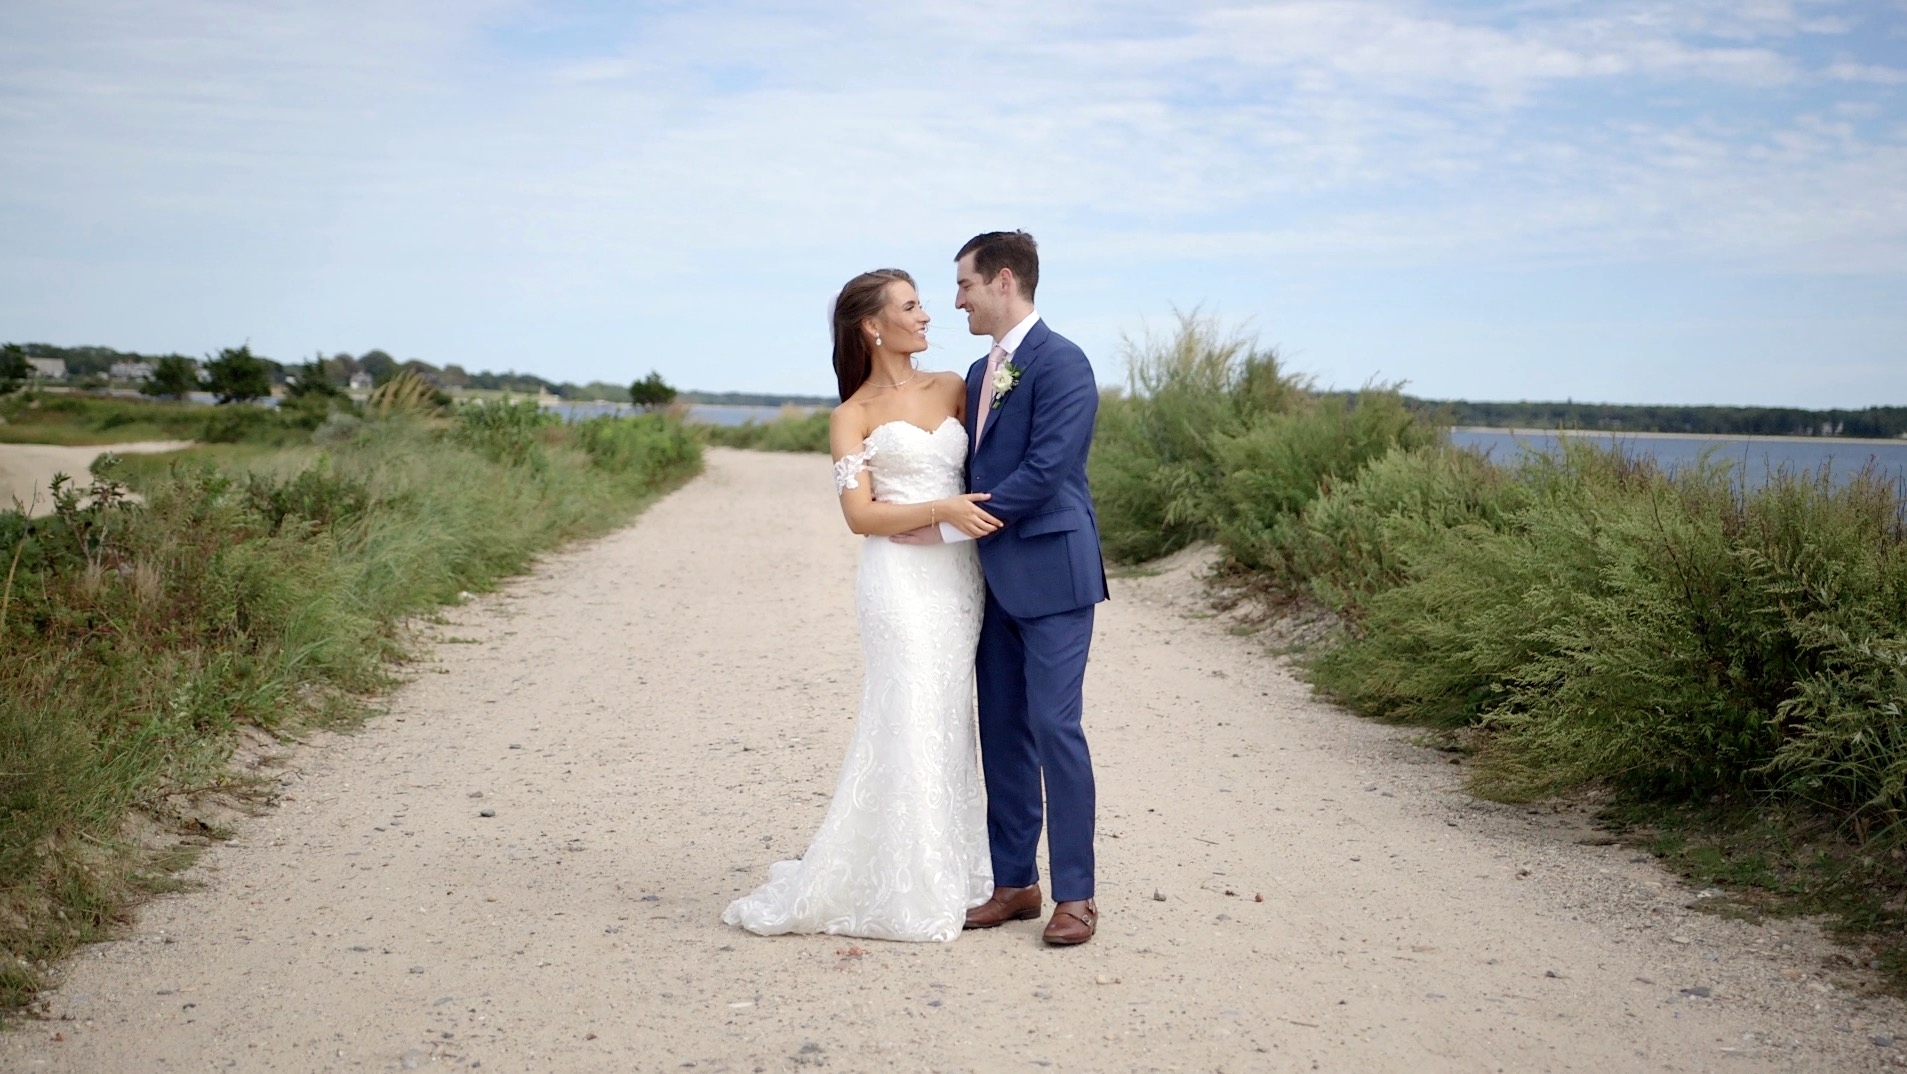 Courtney + Michael | Shelter Island, New York | Private Home